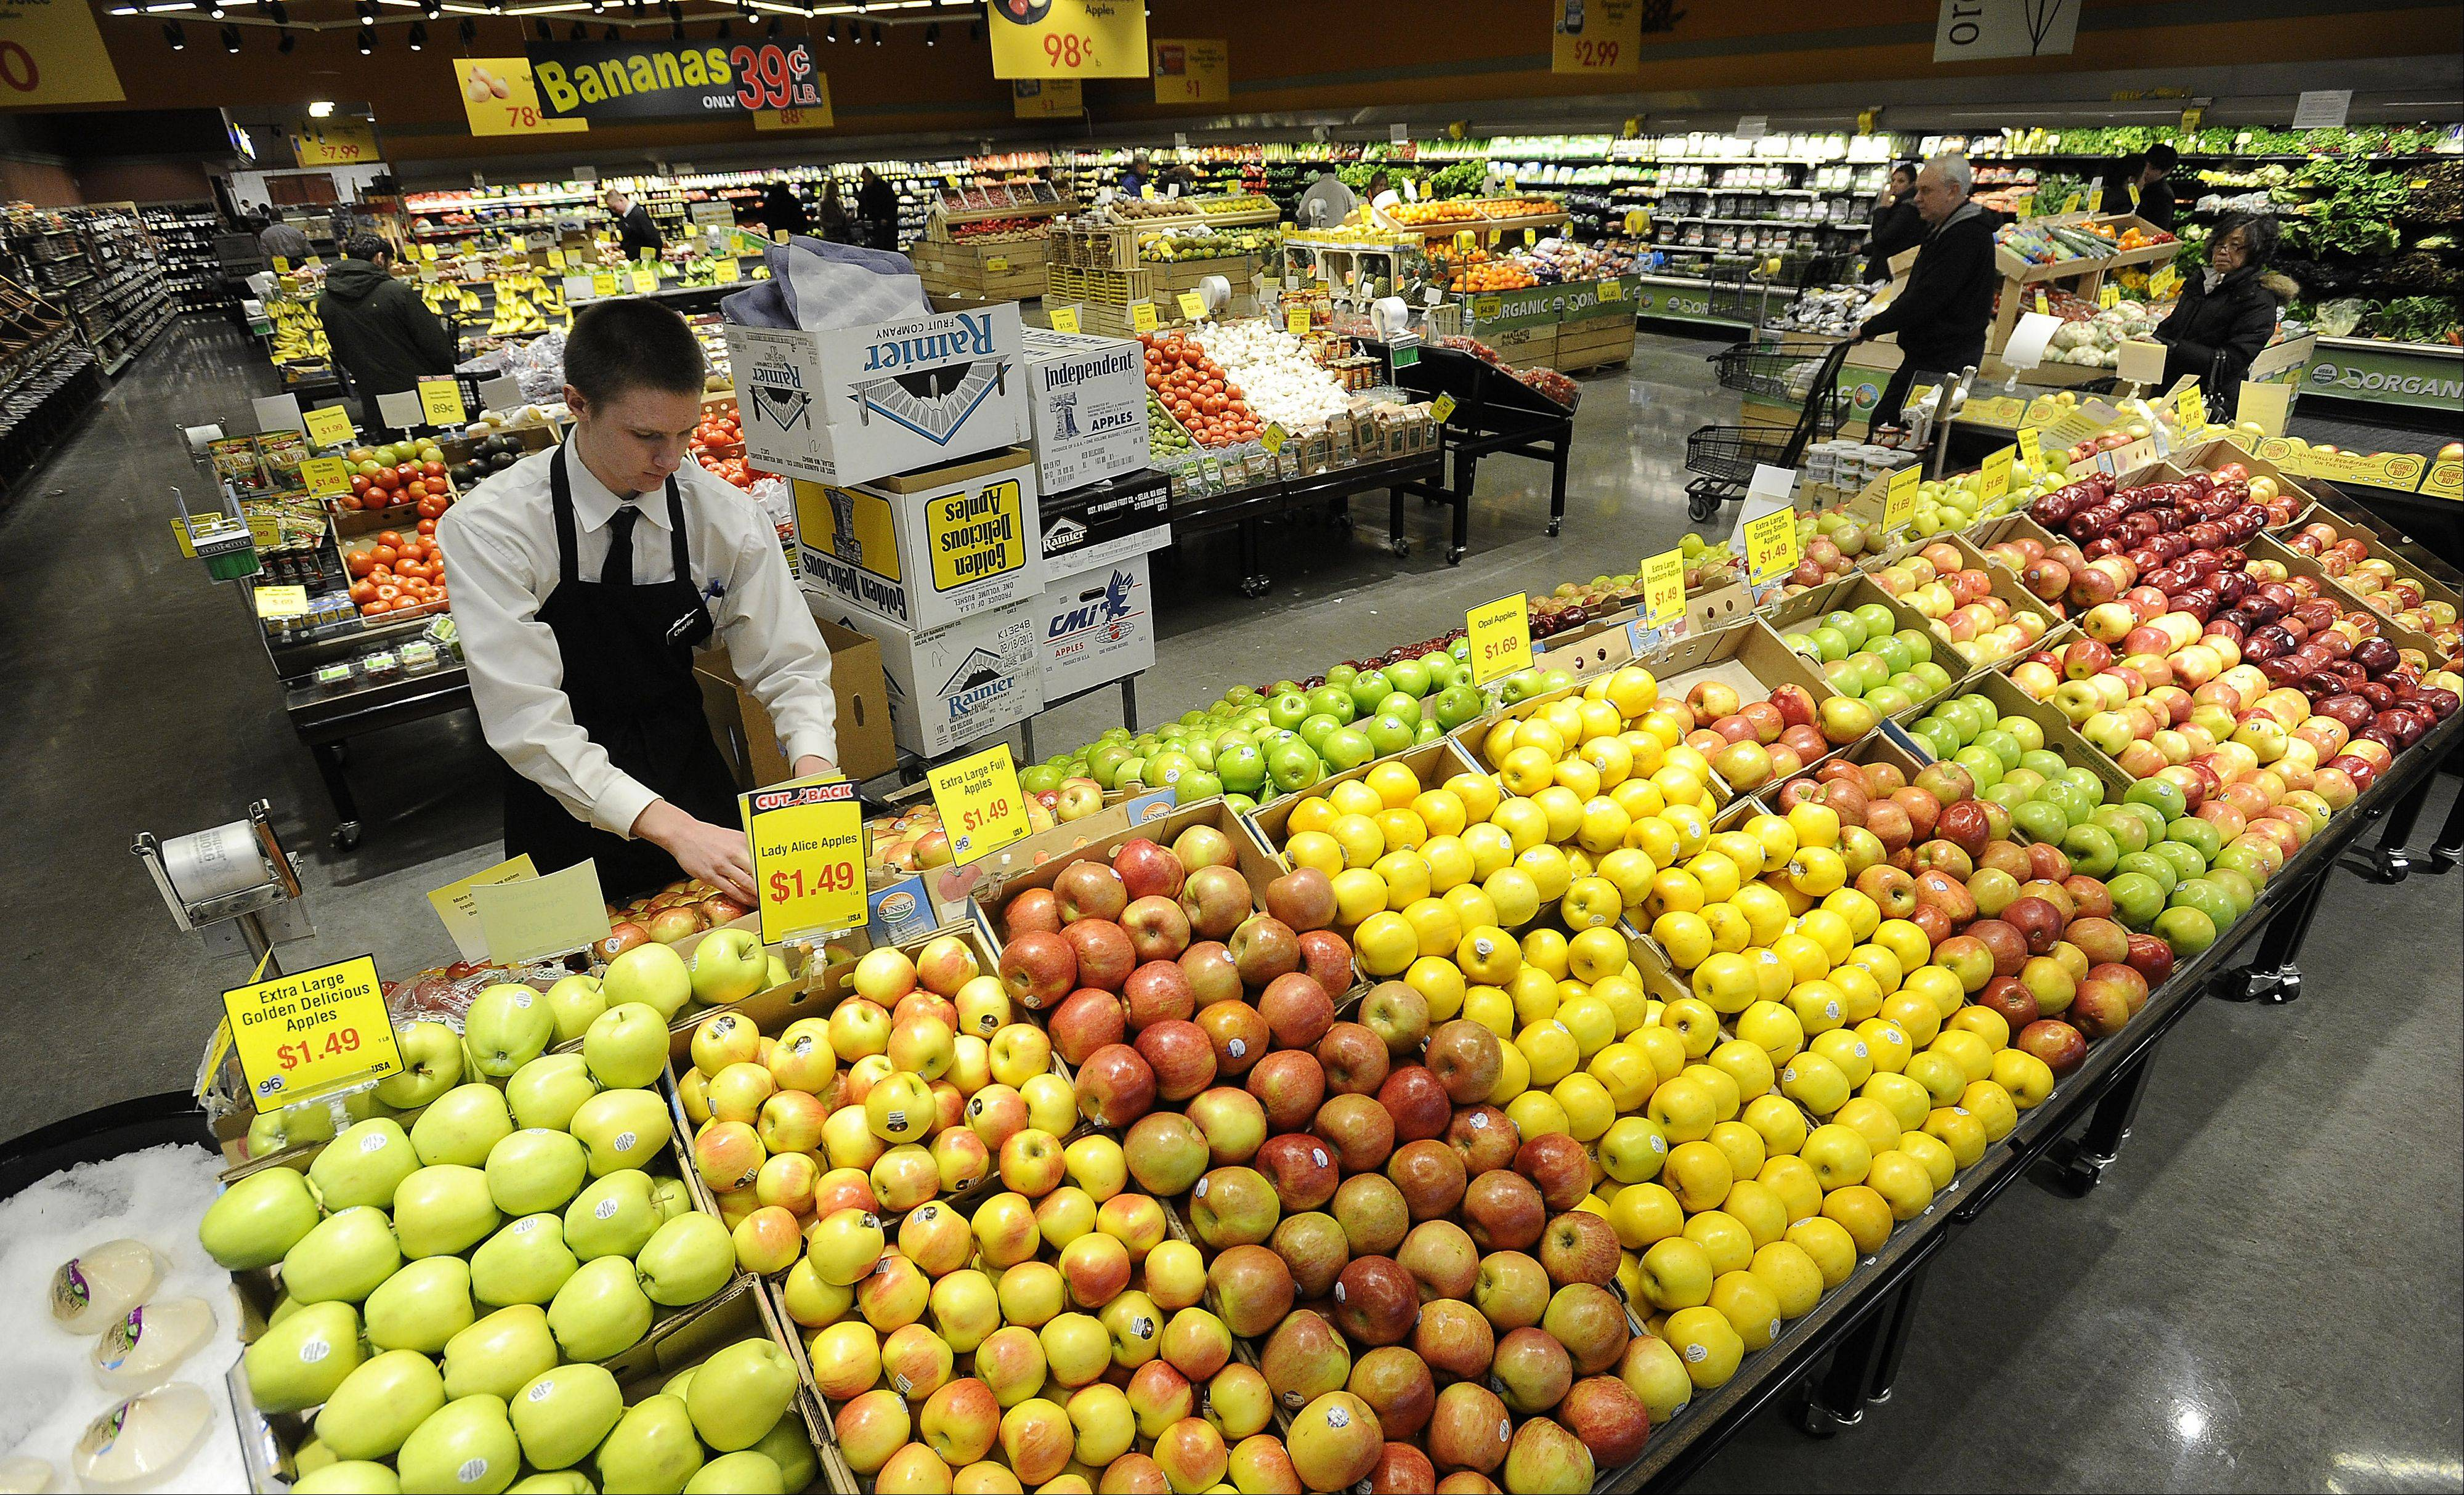 Produce clerk Charlie Gimmler of Palatine stocks apples and other produce at Mariano's in Palatine. Fresh produce is in high demand in the suburbs, so grocers pay special attention to it.